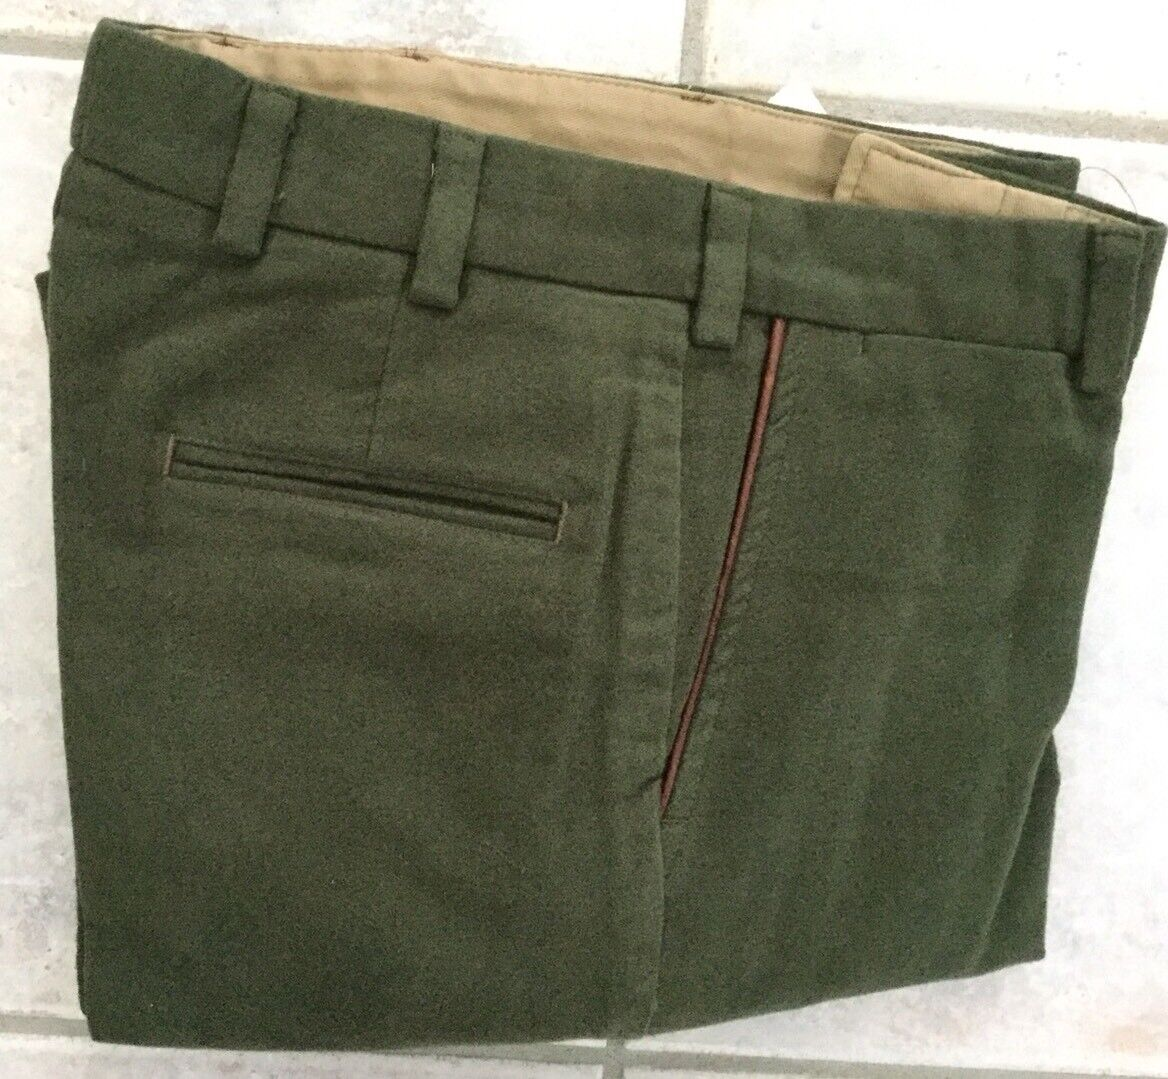 NWOT-Bills khakis M2-PLAIN CLASSIC FIT CUFFED SZ 34X31 MOLESKIN Green